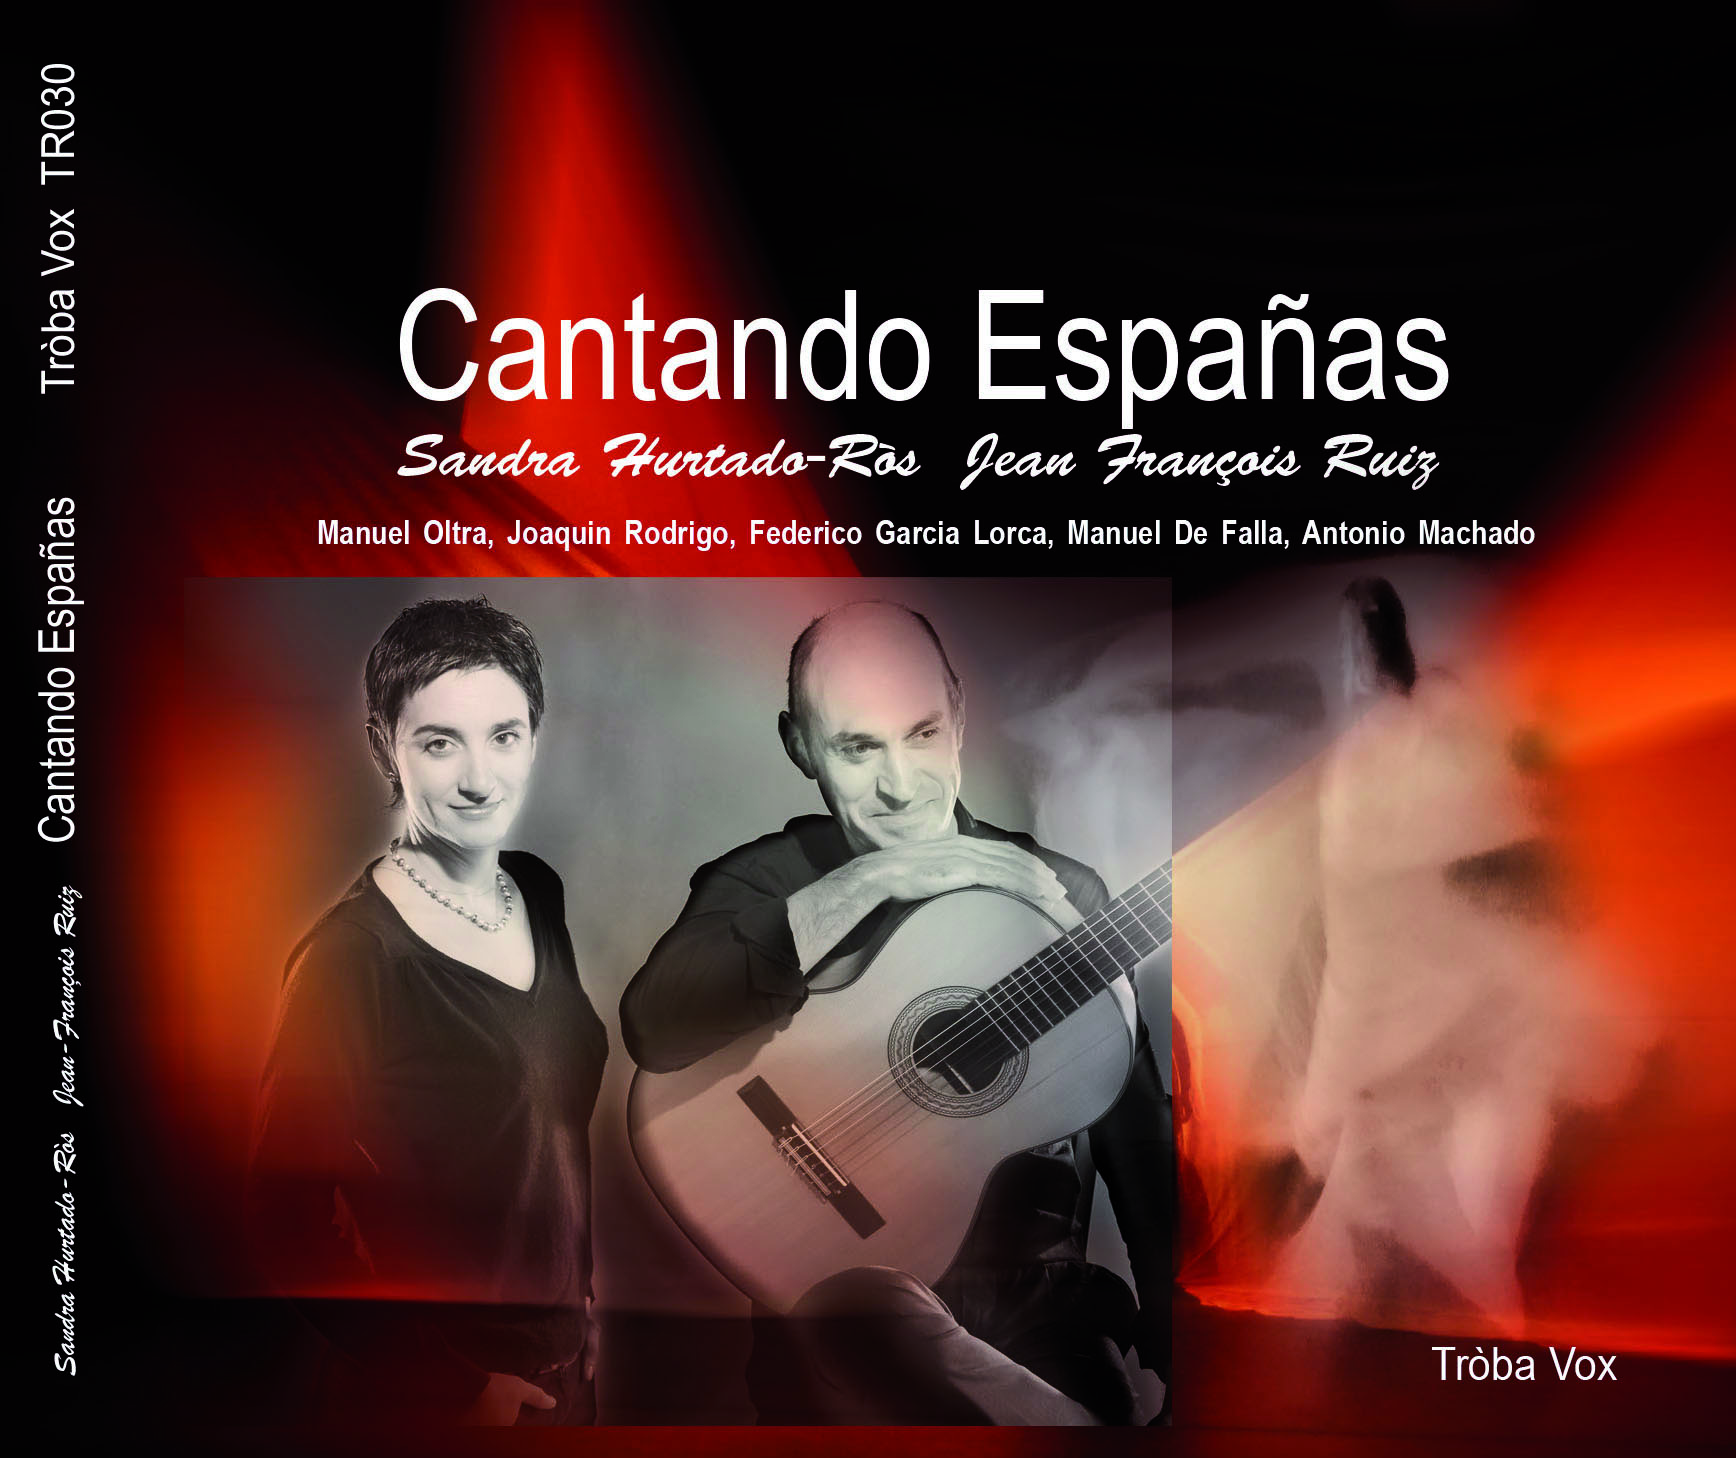 Cantando Espanas, Production d'artistes